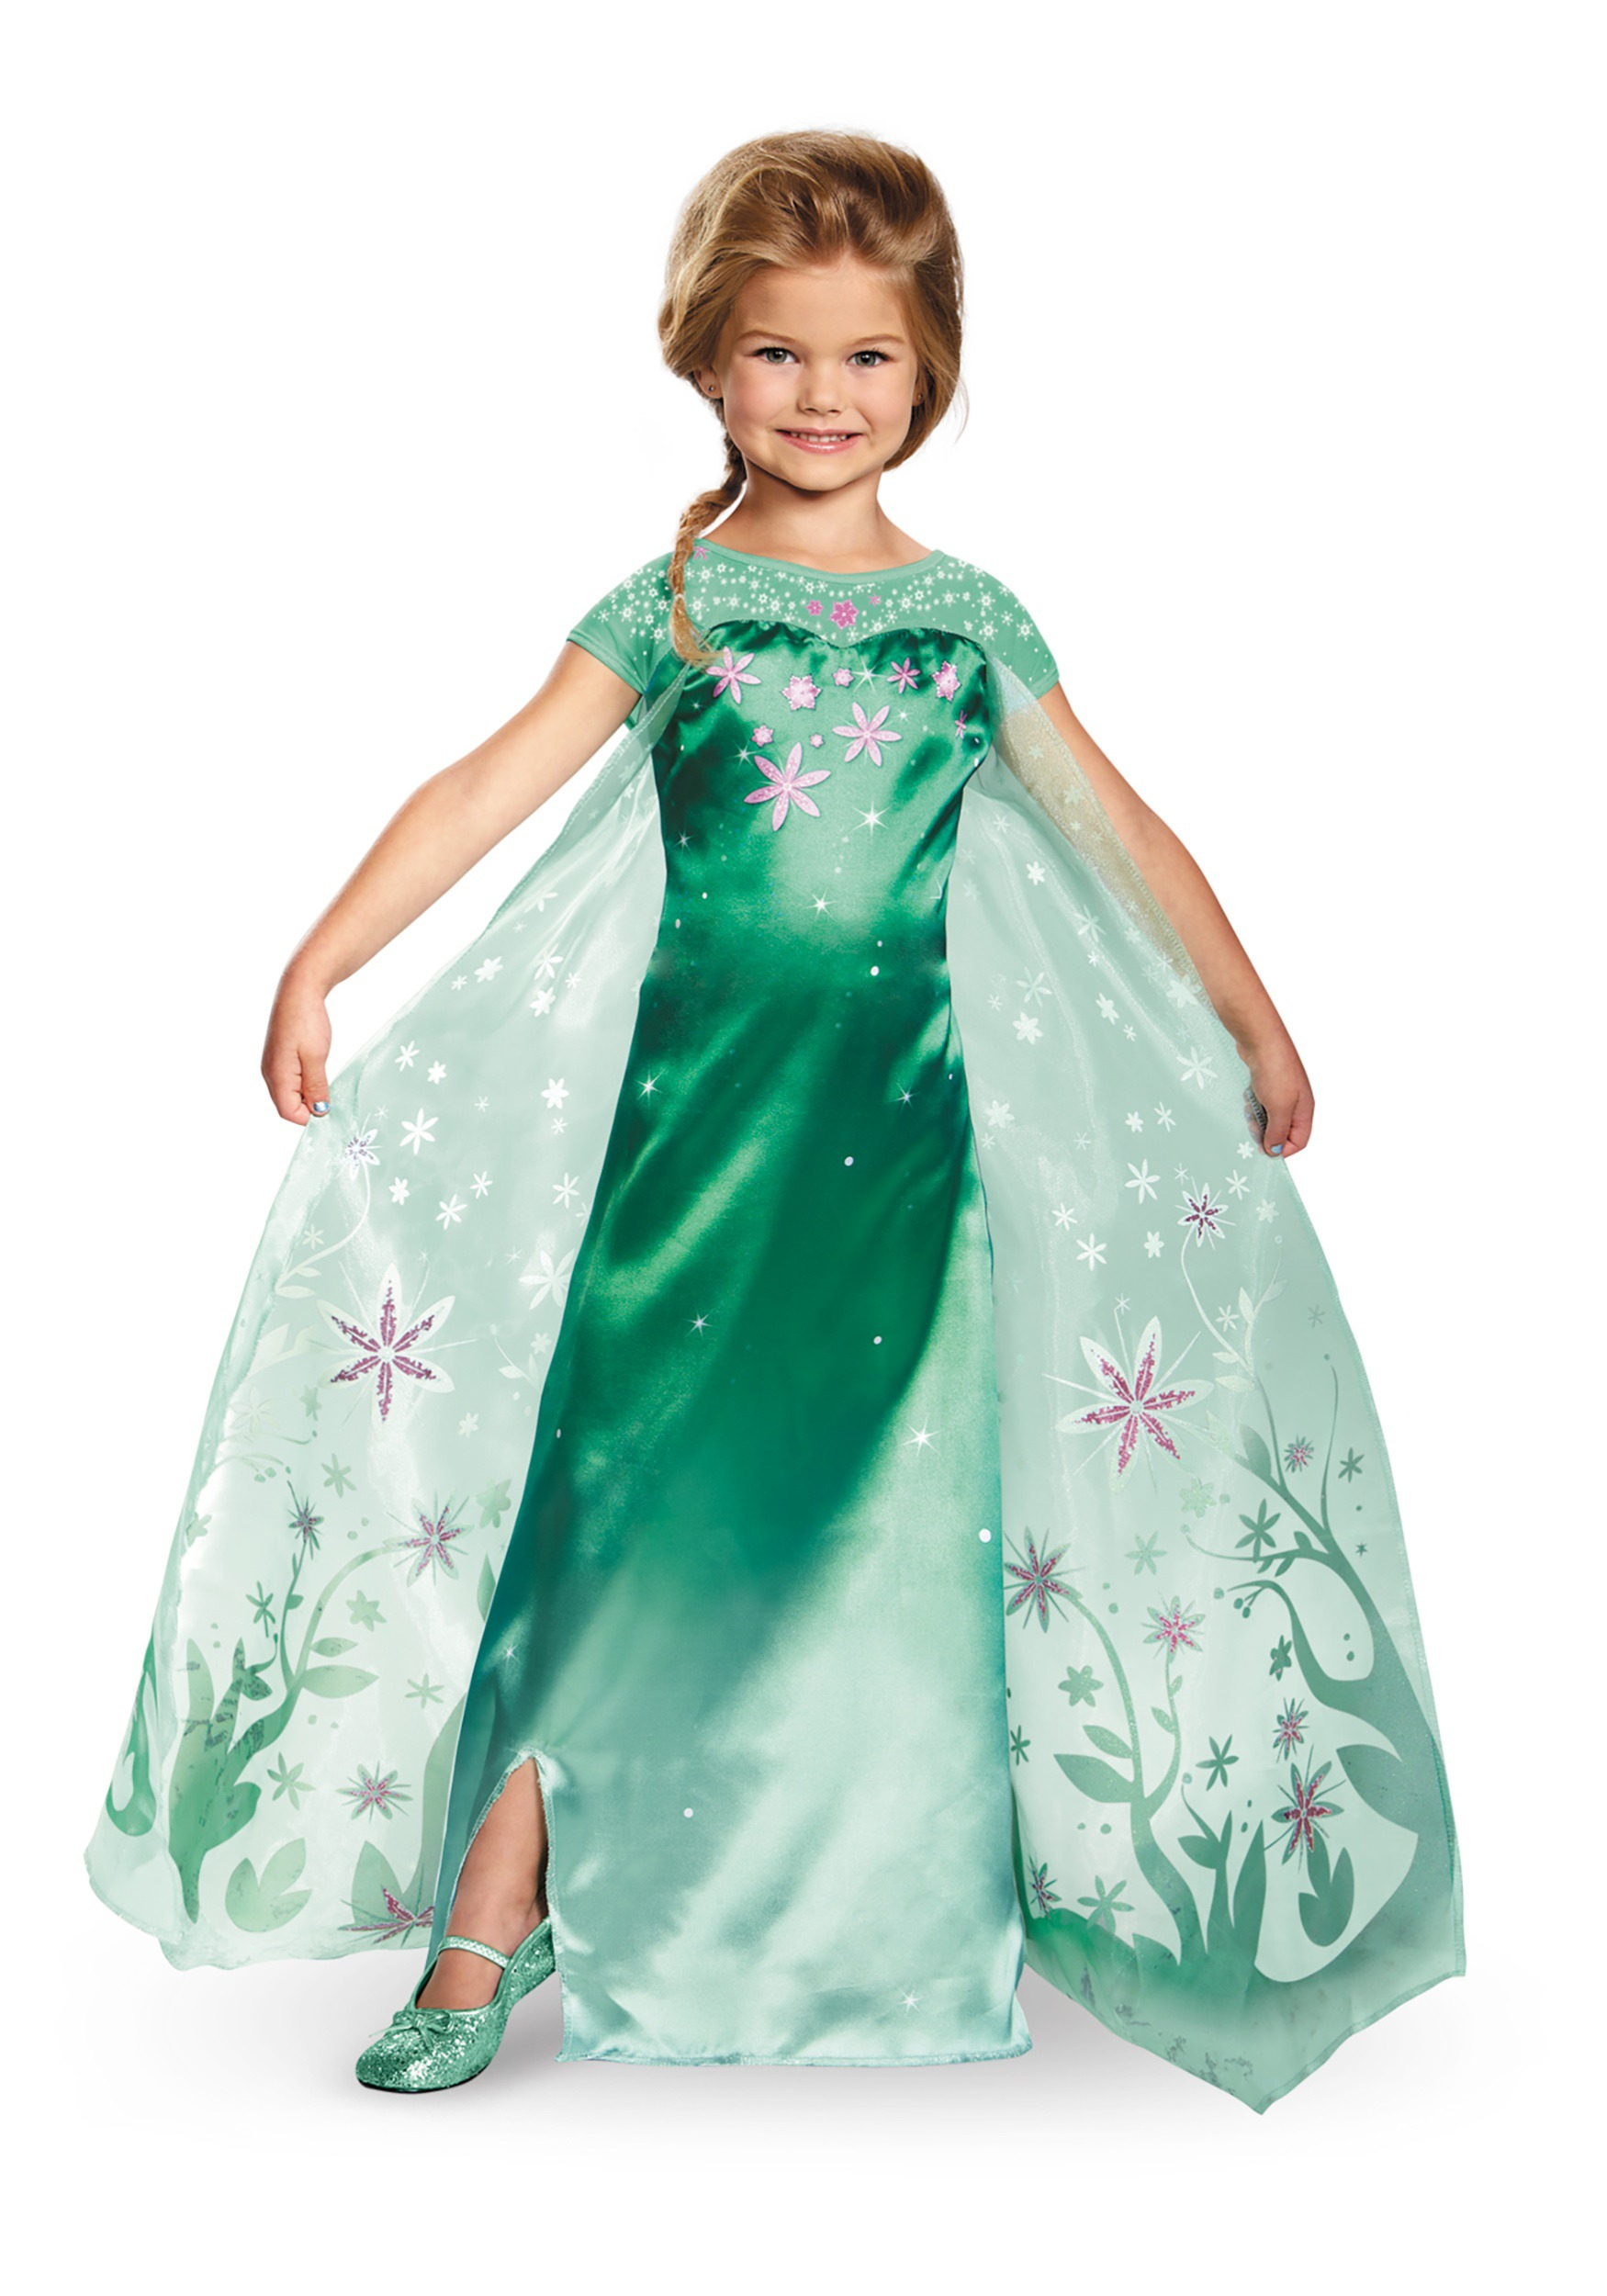 Deluxe Frozen Fever Elsa Costume For Girls  sc 1 st  Fun.com & Deluxe Frozen Fever Elsa Costume For kids